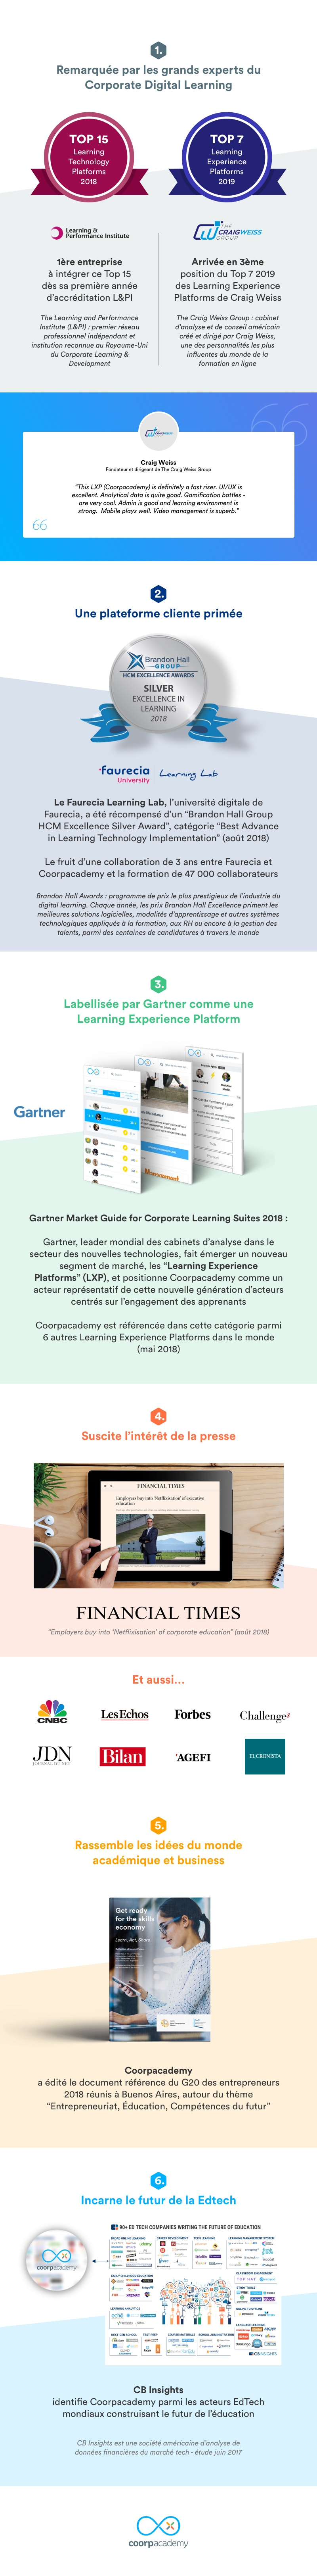 Infographie Coorpacademy